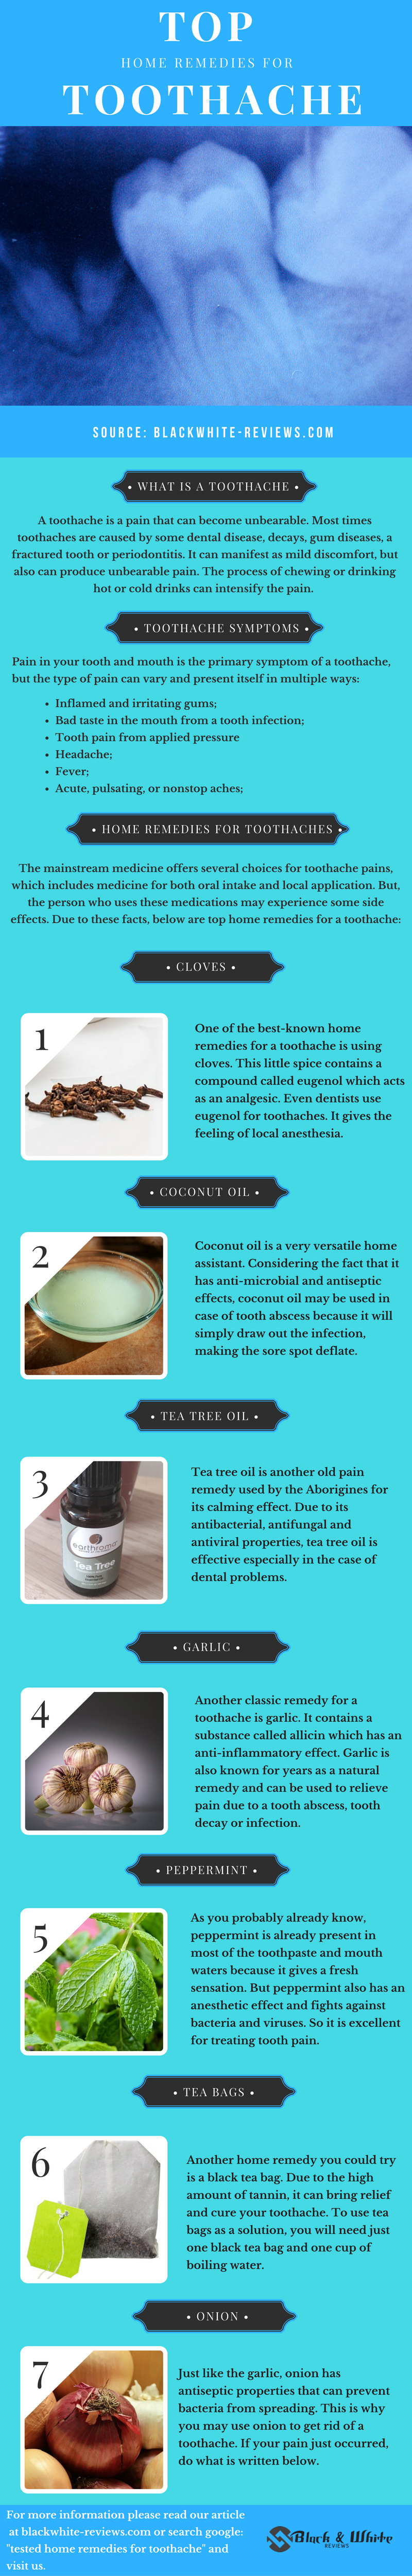 top 10 home remedies for toothache - infographic